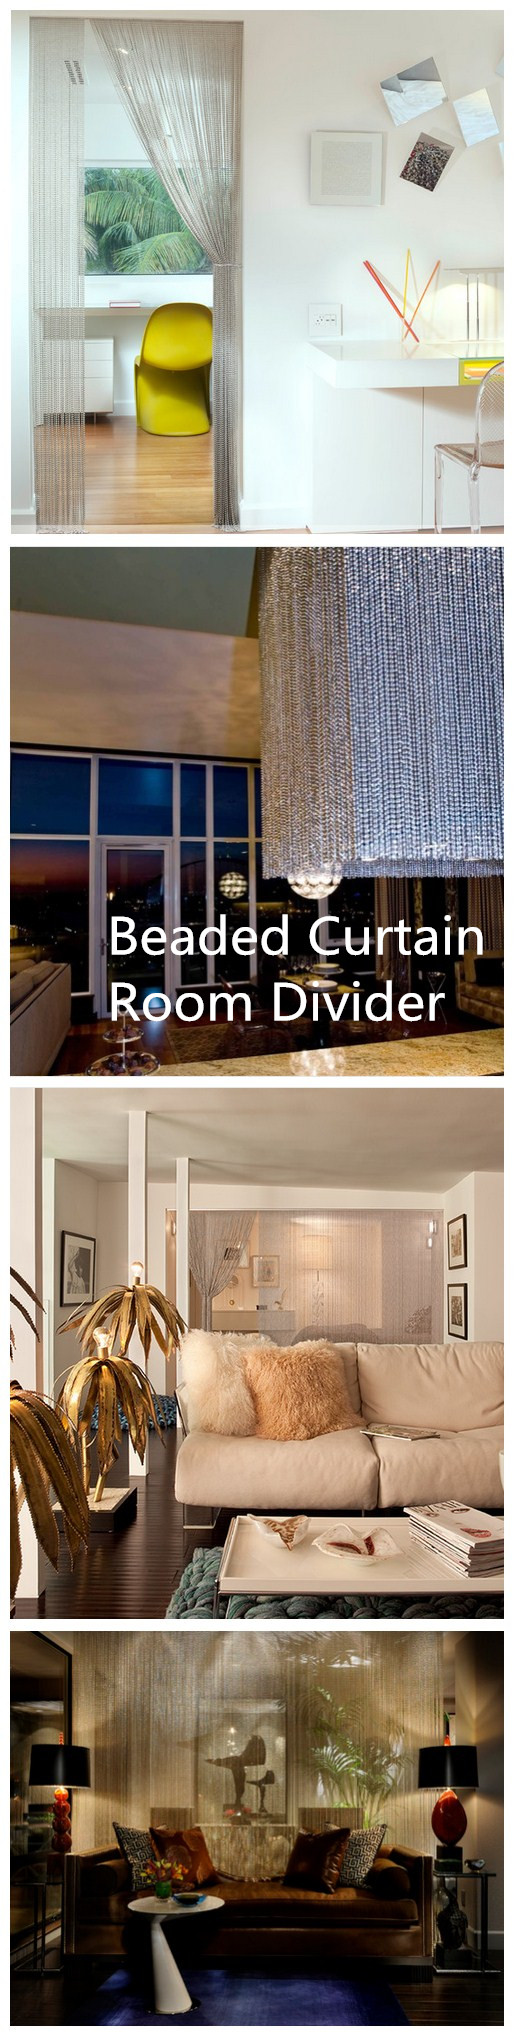 Beaded Curtain Room Divider In Interior Decoration,beaded Chain Door Screen,beaded  Chain Chandelier,wonderful Design By Beaded Chain.